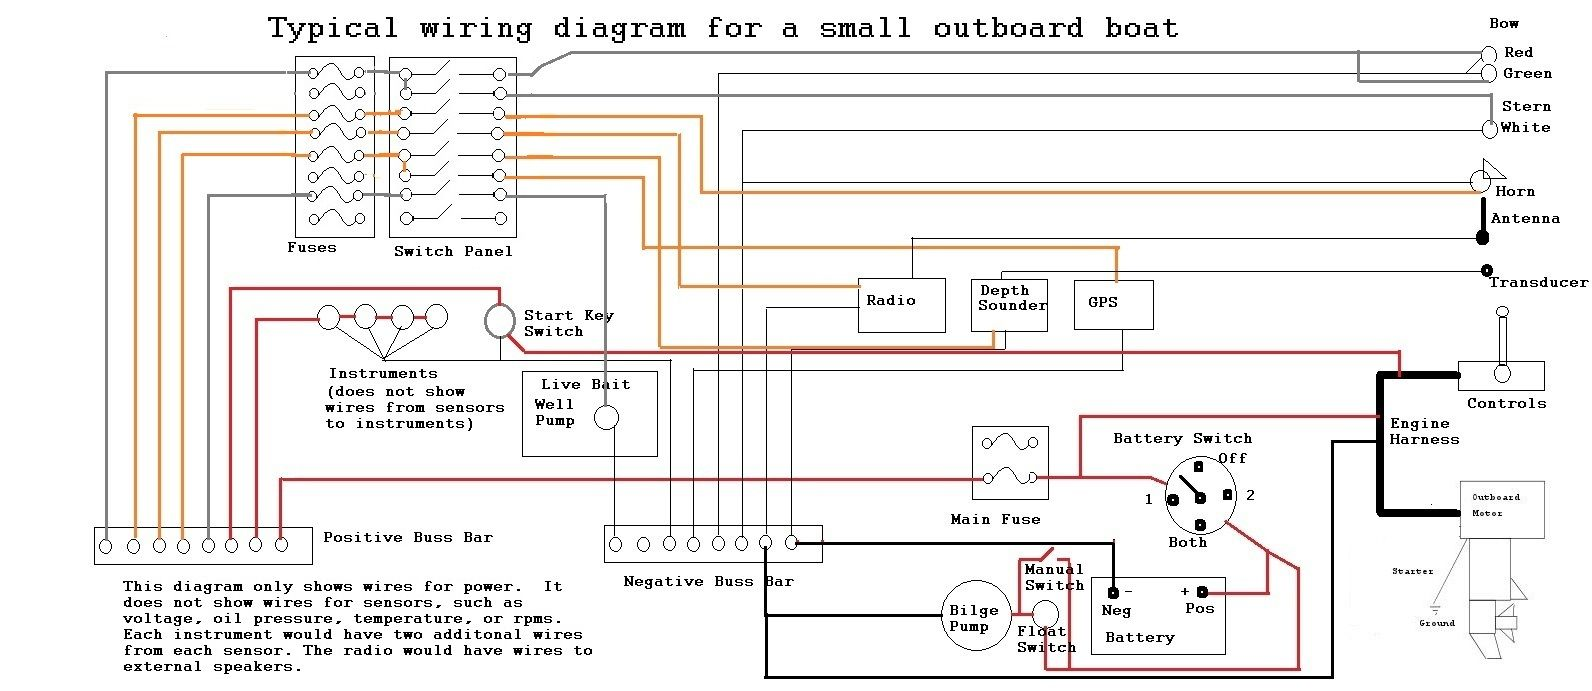 wiring diagram small outboard [ 1592 x 691 Pixel ]